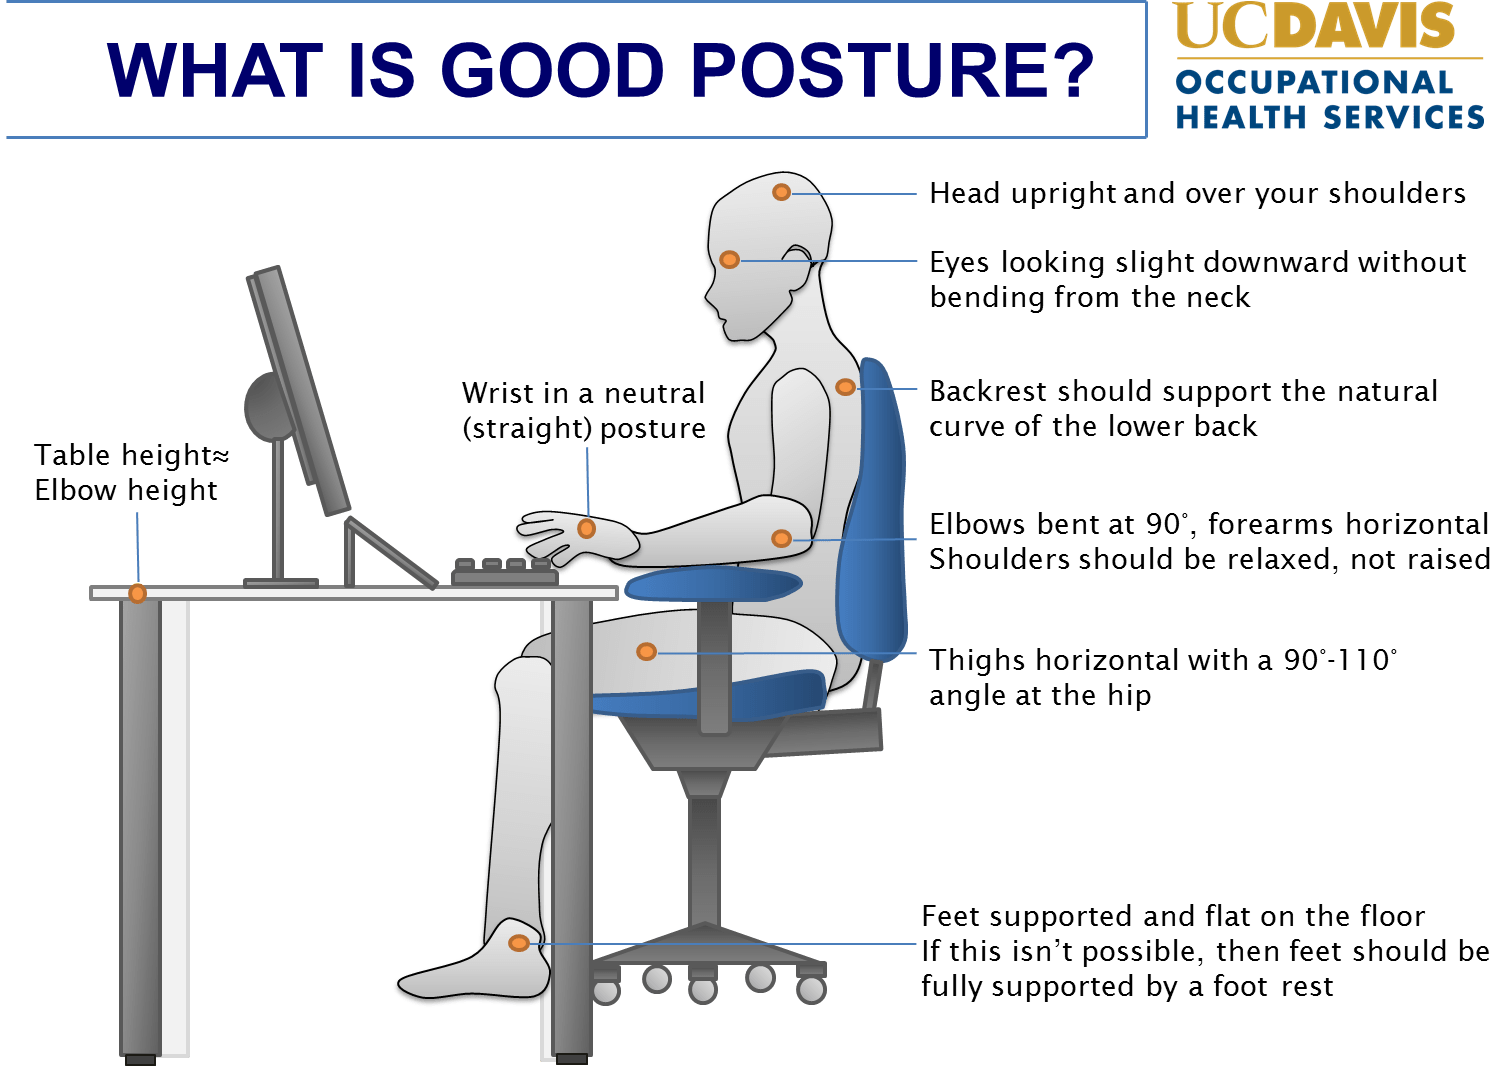 office chair posture tips adirondack style chairs ergonomics and best practices ucop